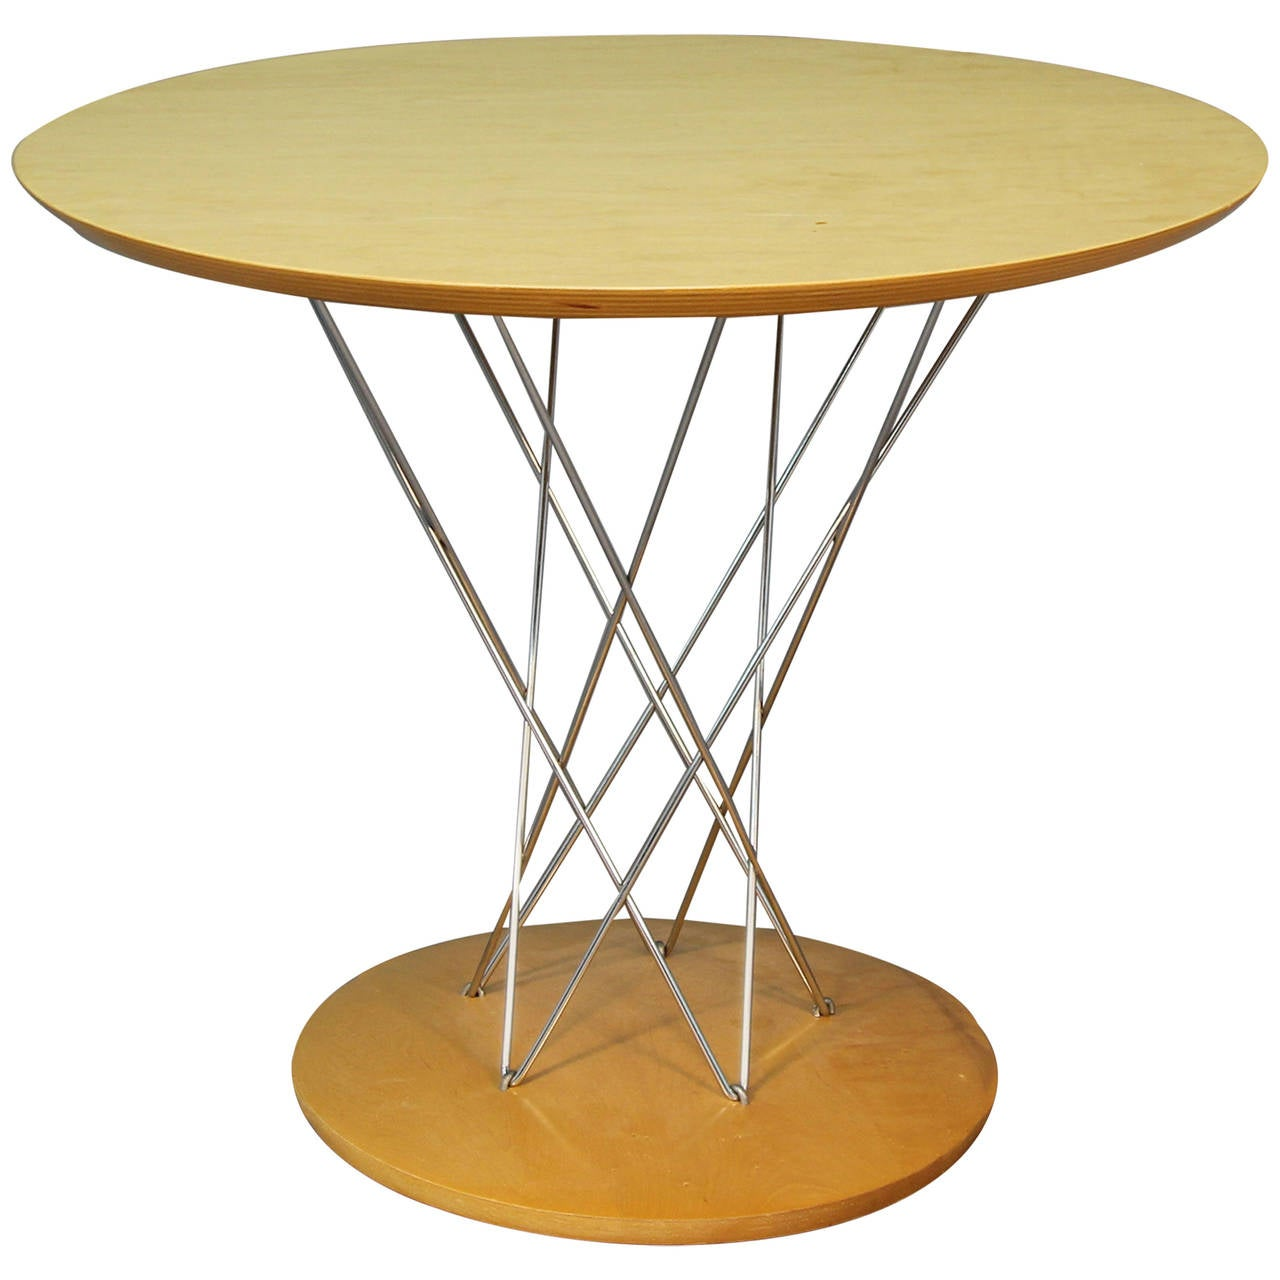 lovely Noguchi Cyclone Part - 16: Isamu Noguchi Cyclone Childs Size Table for Modernica For Sale